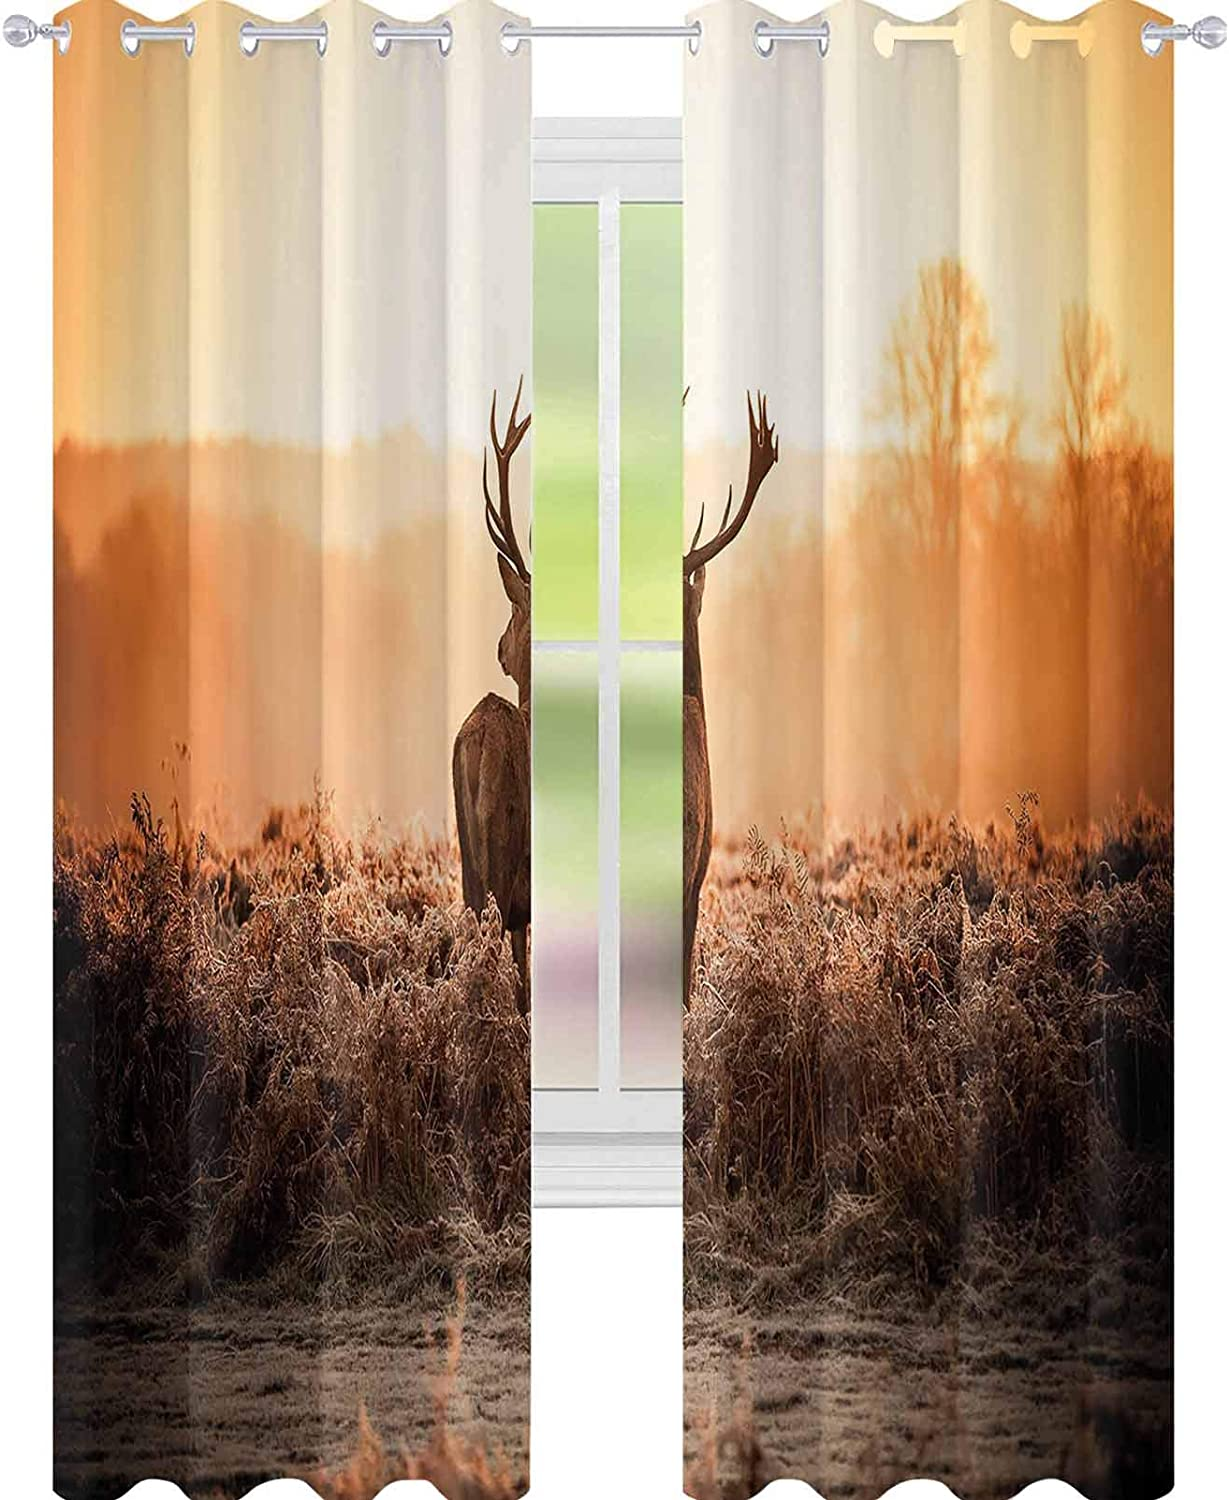 """YUAZHOQI Hunting Decor Curtains for Living Room Red Deer in The Morning Sun Wild Nature Scenery Countryside Rural Heathers Noise Reducing Curtain 52"""" x 72"""" Brown Orange"""